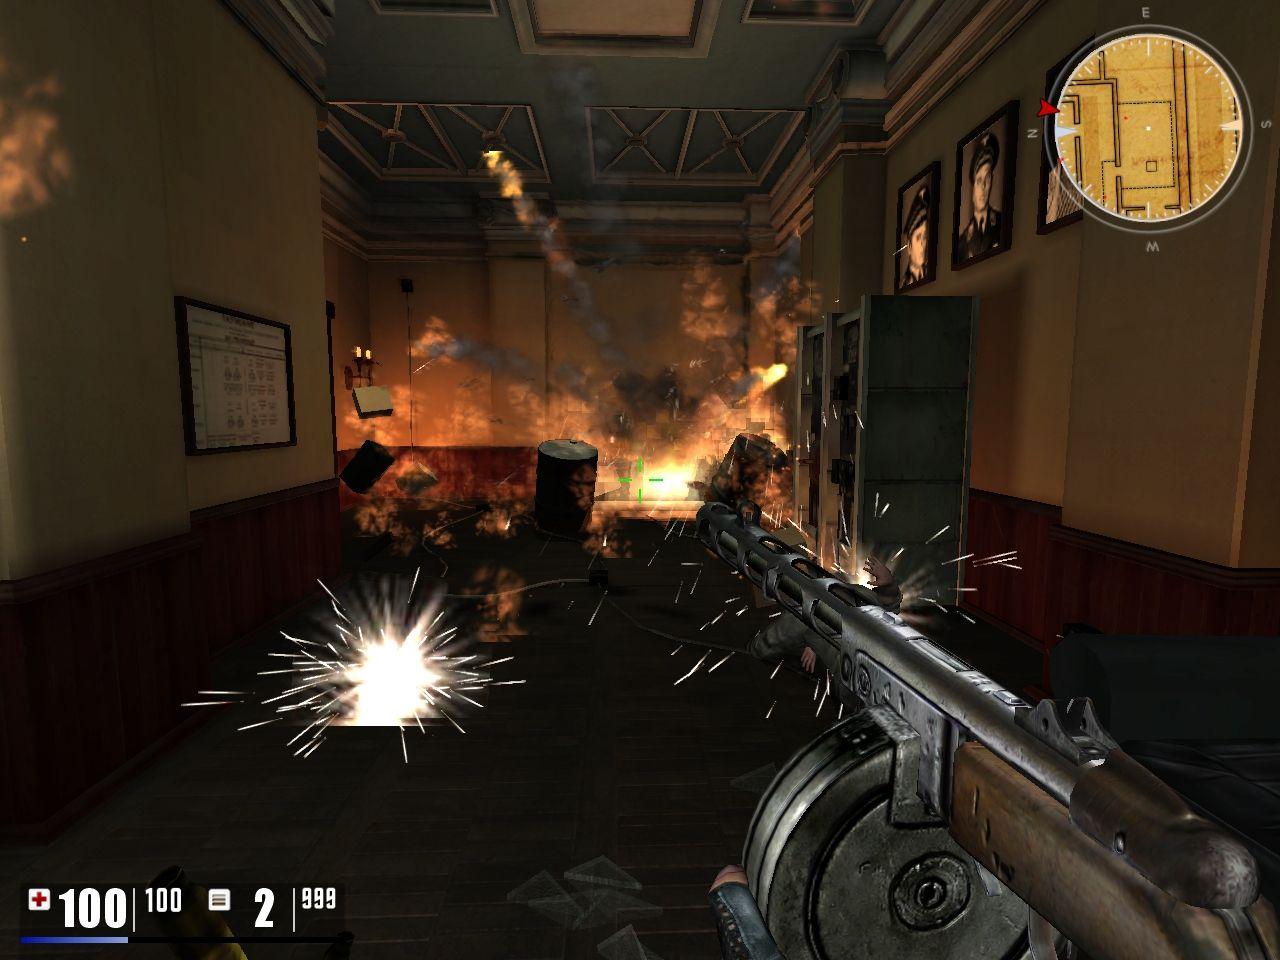 UberSoldier Screenshots - Video Game News, Videos, and File ...